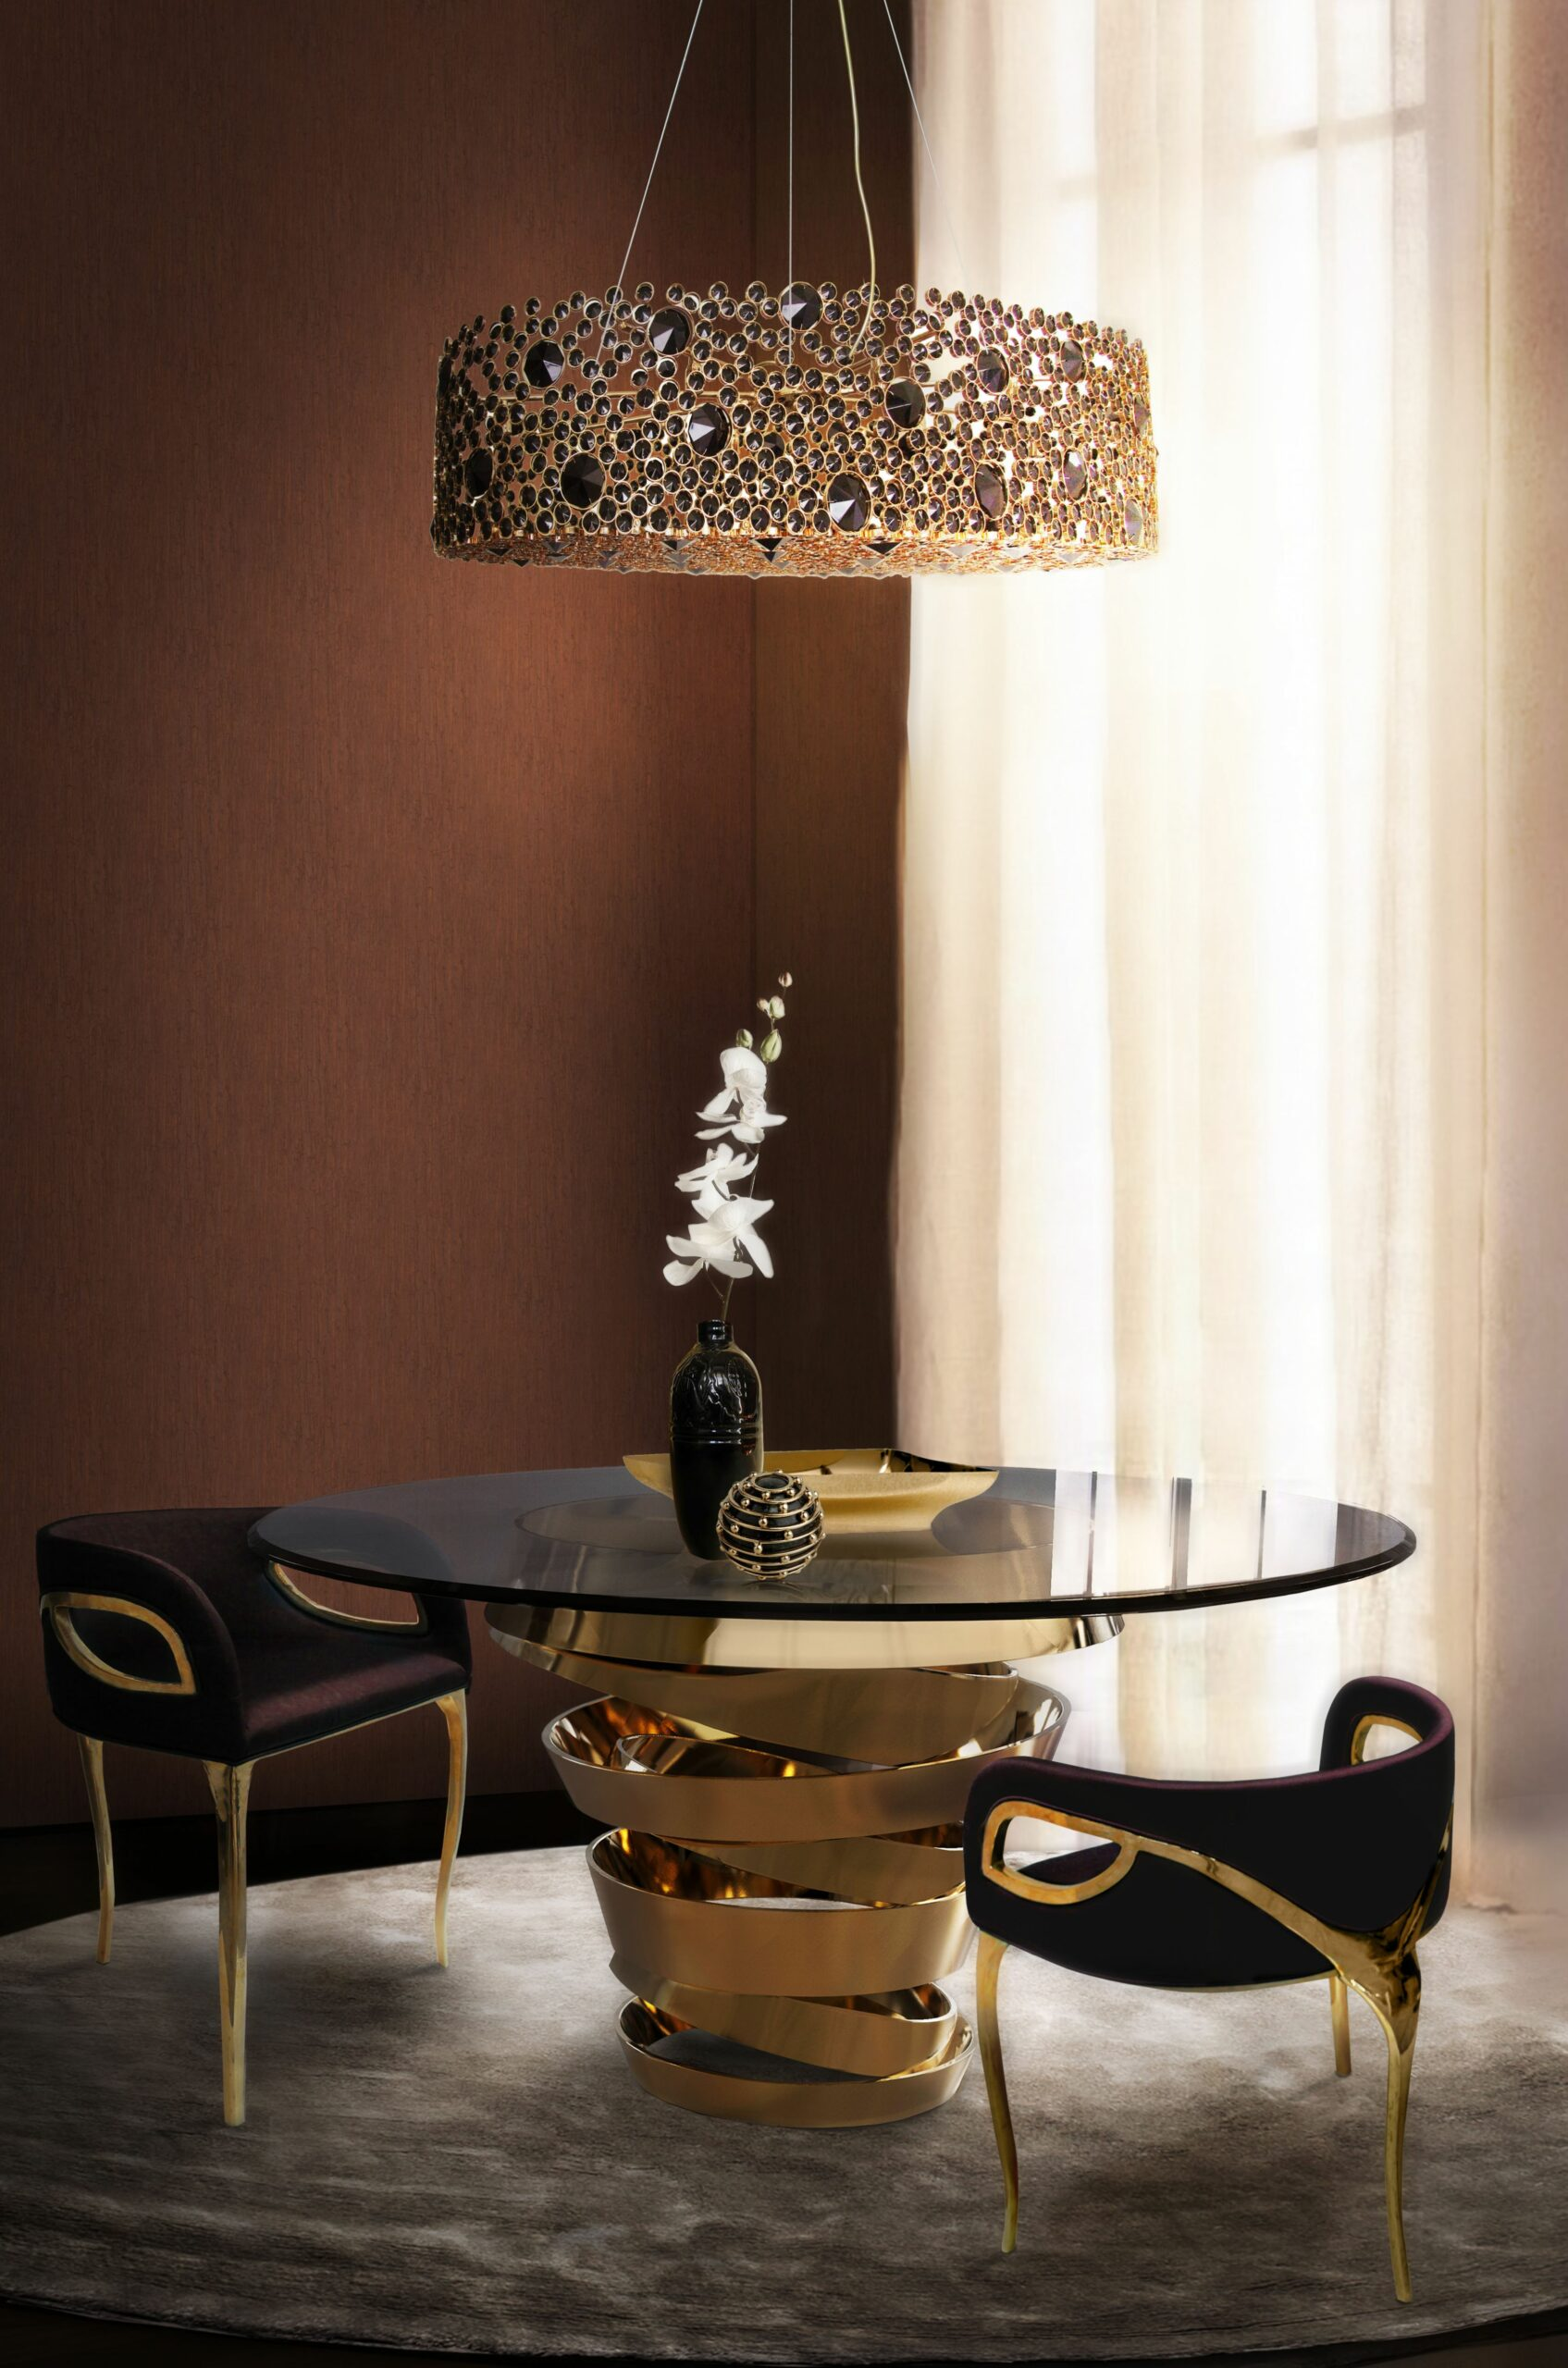 The Best Black and Gold Decorating Ideas for your Dining Room - dining room ideas gold